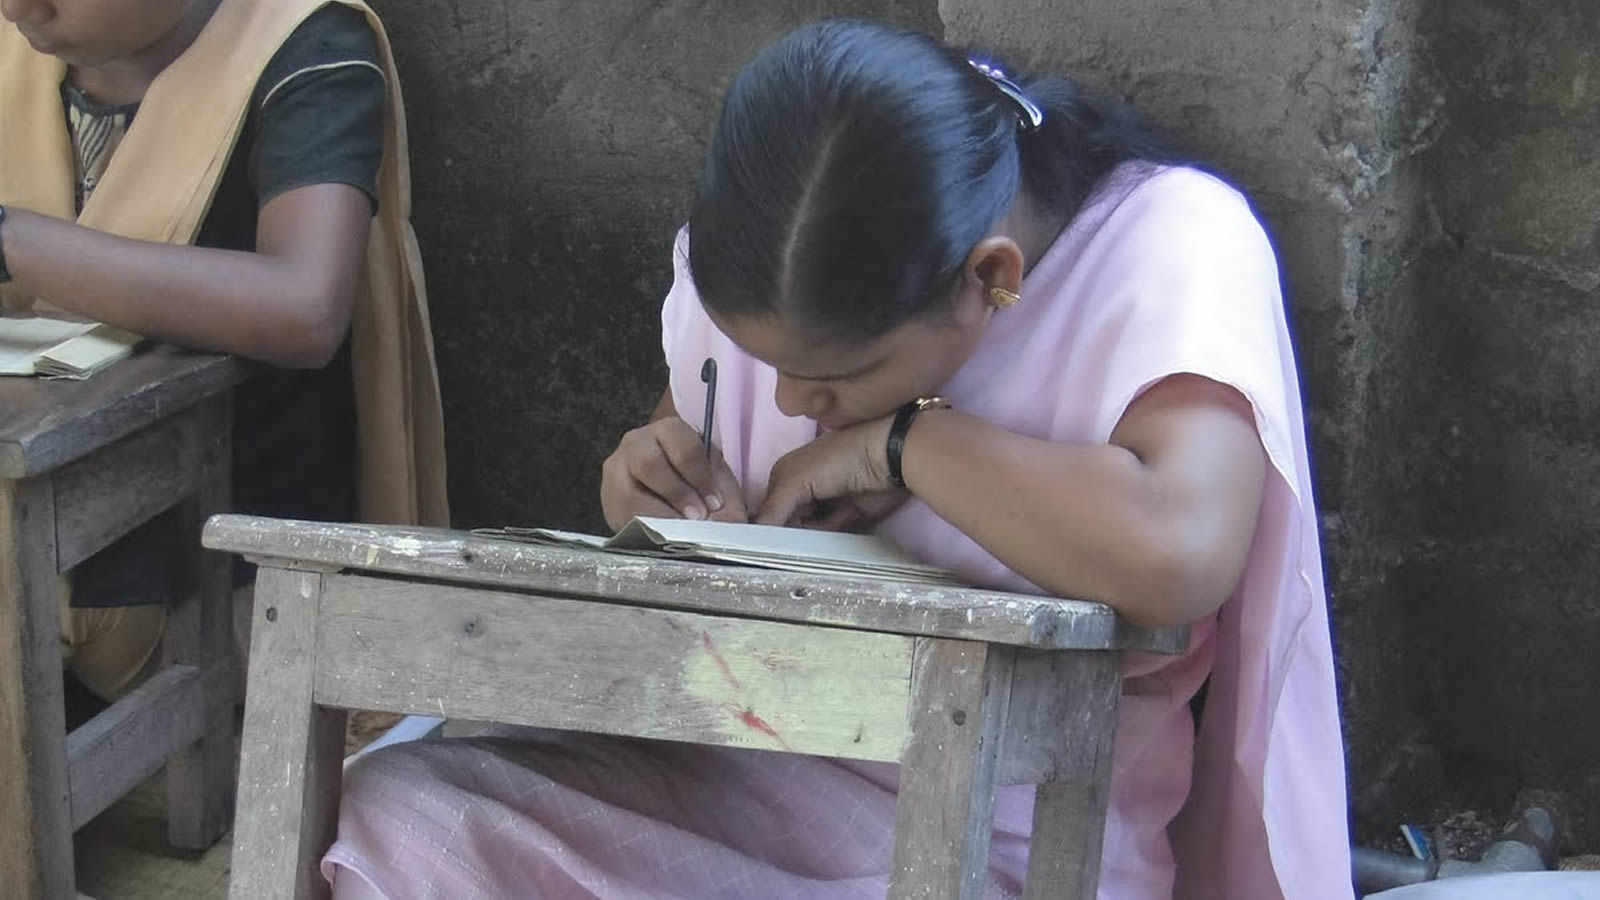 Indian Woman in Pink Writing on Desk